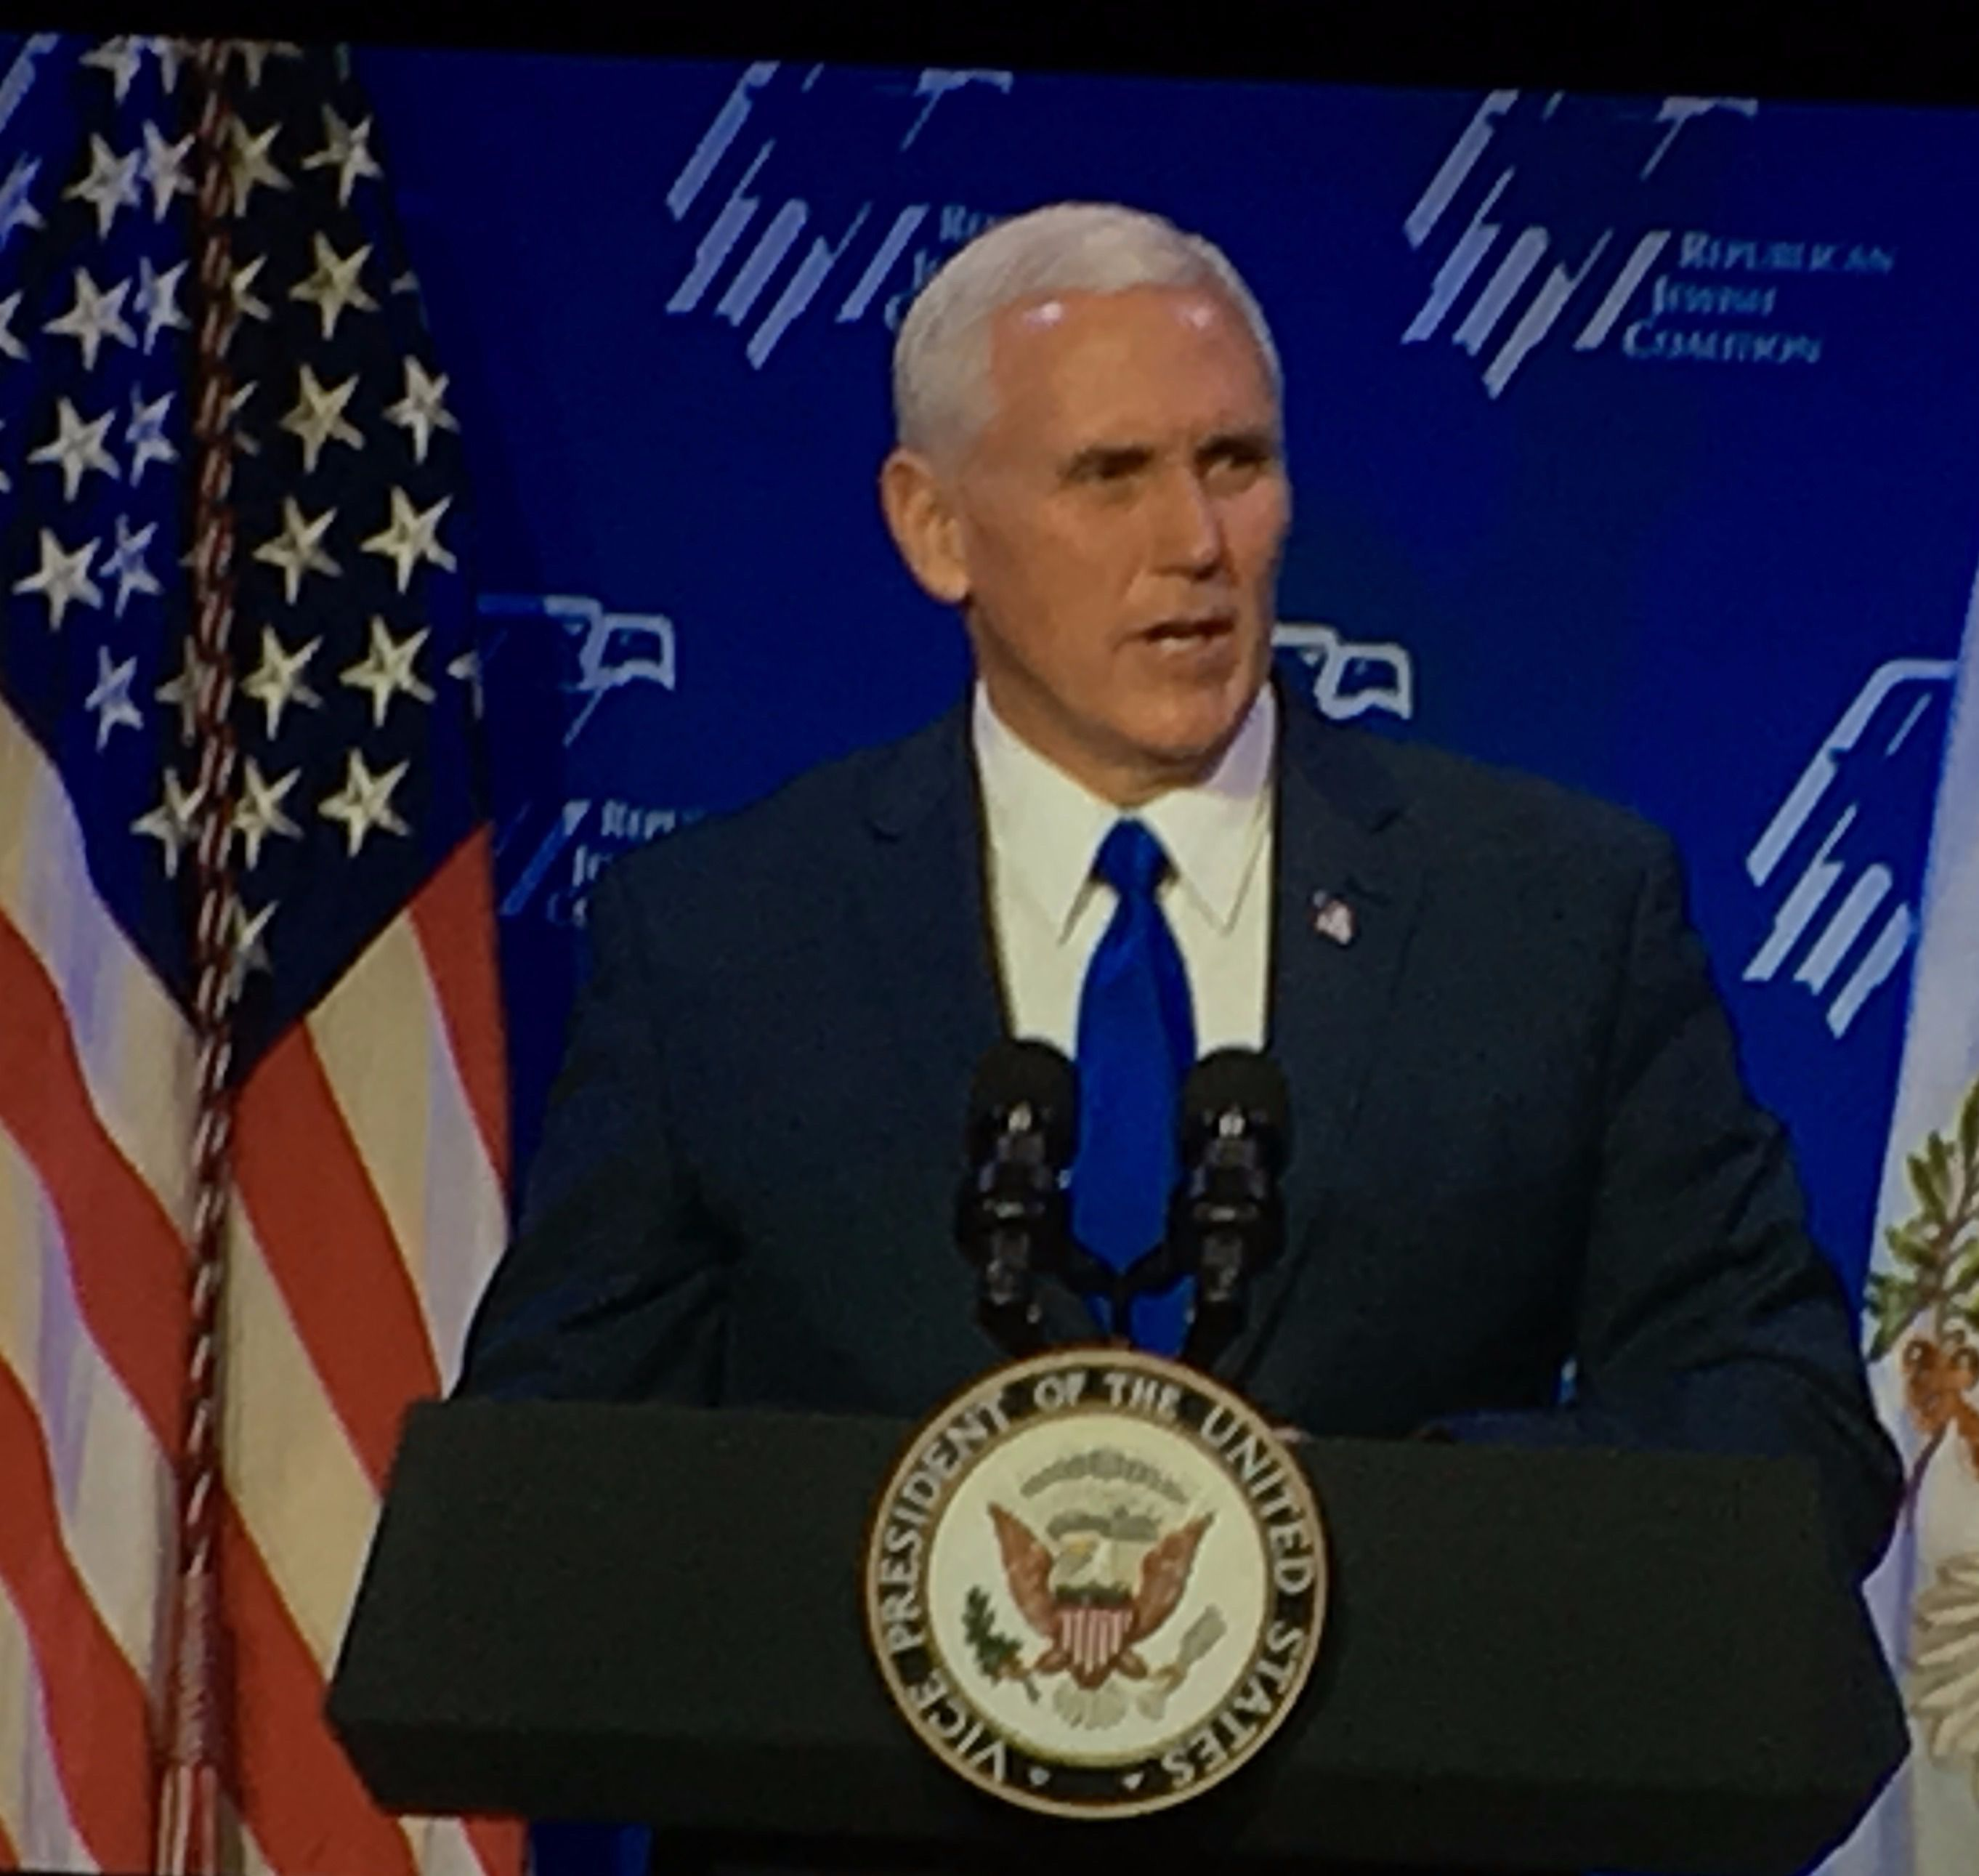 Vice President Mike Pence at the Republican Jewish Coalition meeting in Las Vegas, February 24, 2017